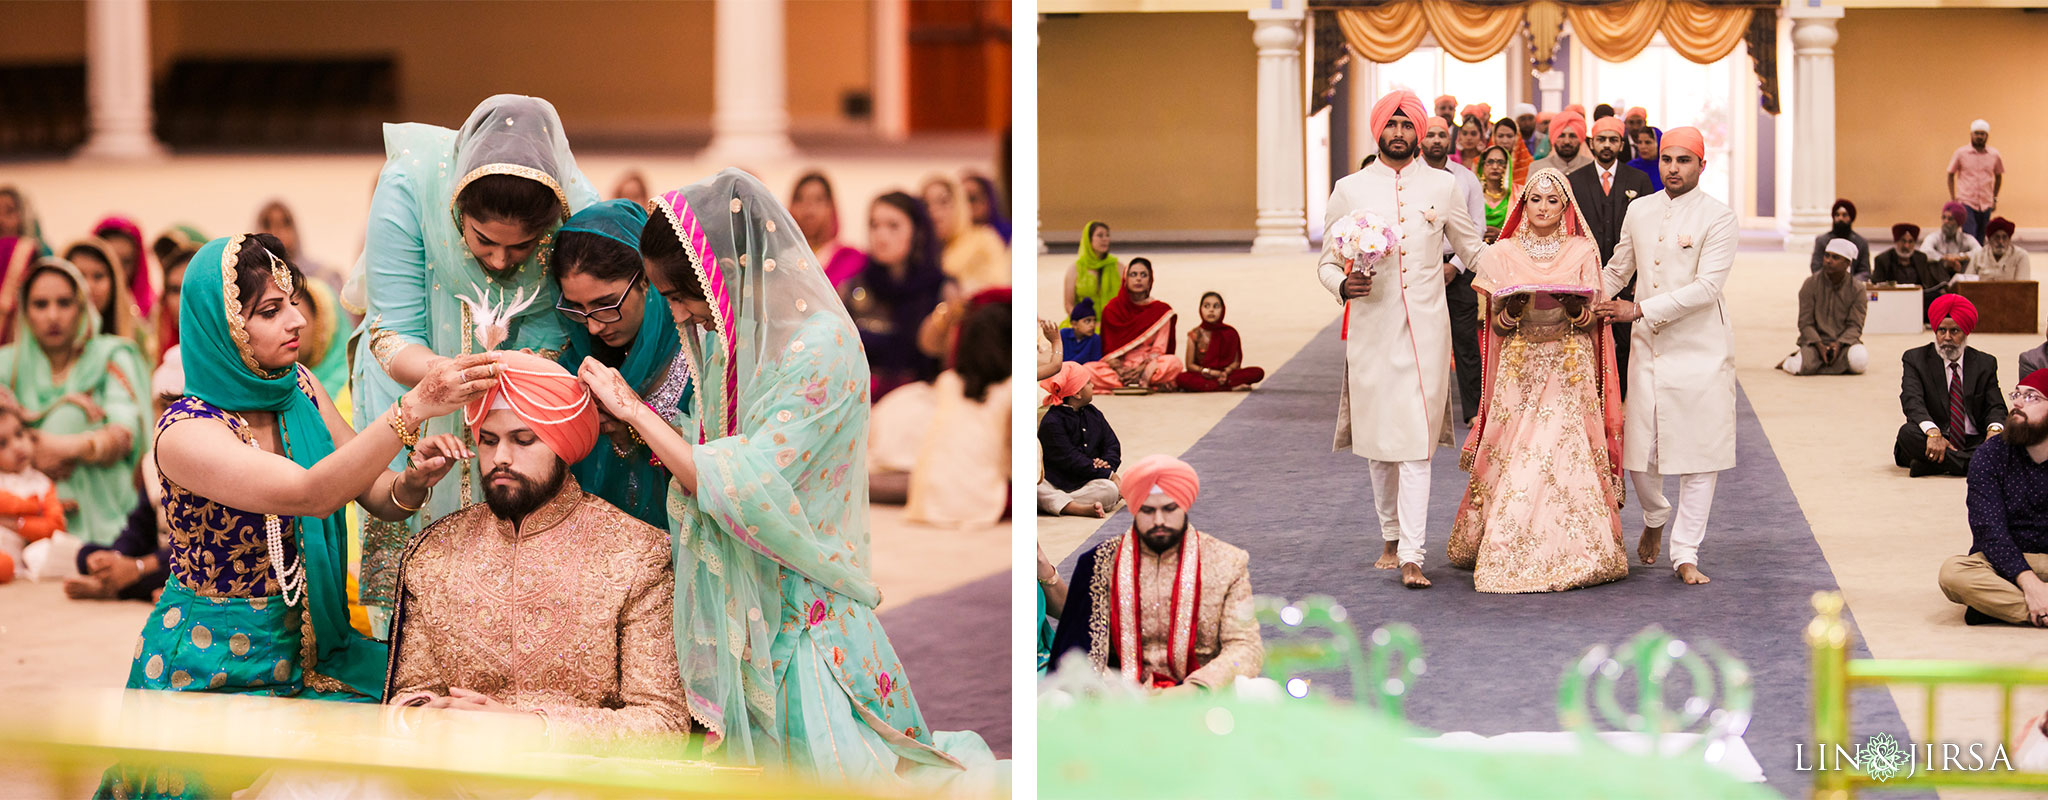 21 gurdwara sahib san jose punjabi sikh indian wedding ceremony photography